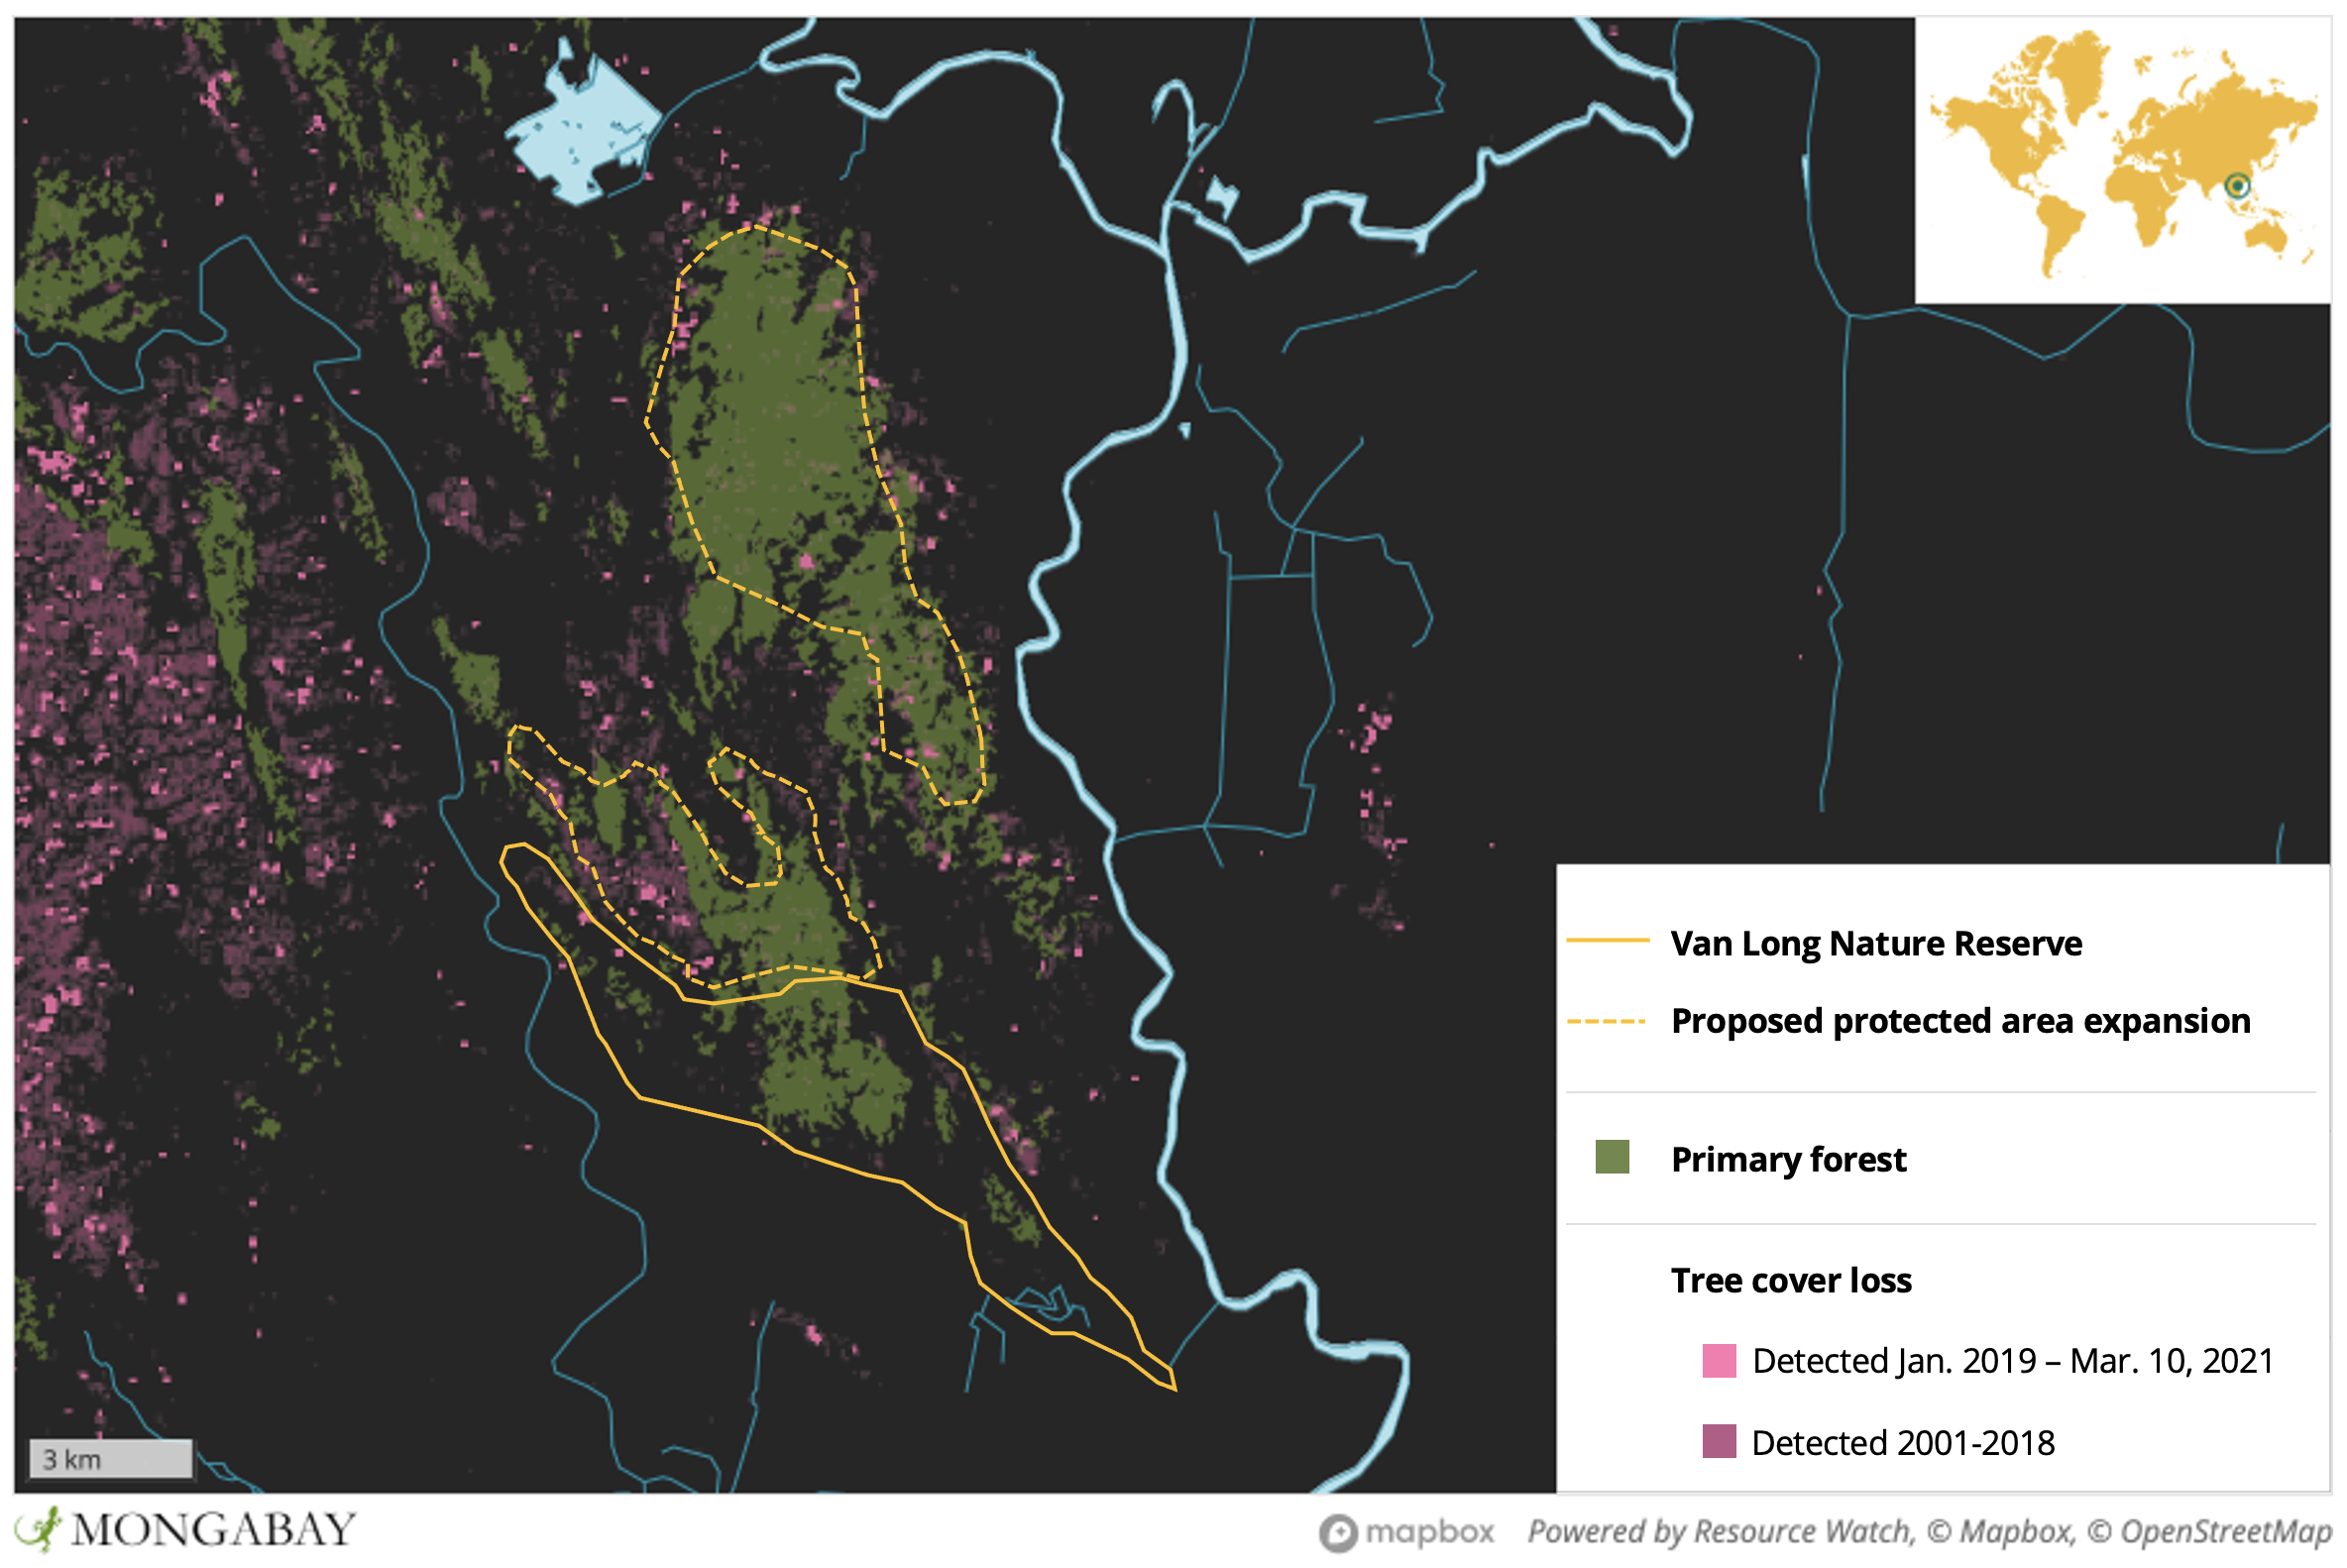 Satellite data from the University of Maryland show negligible forest loss in Van Long over the past 20 years. However, areas to the north that Nadler and other conservationists would like to see protected have experienced recent incursions.